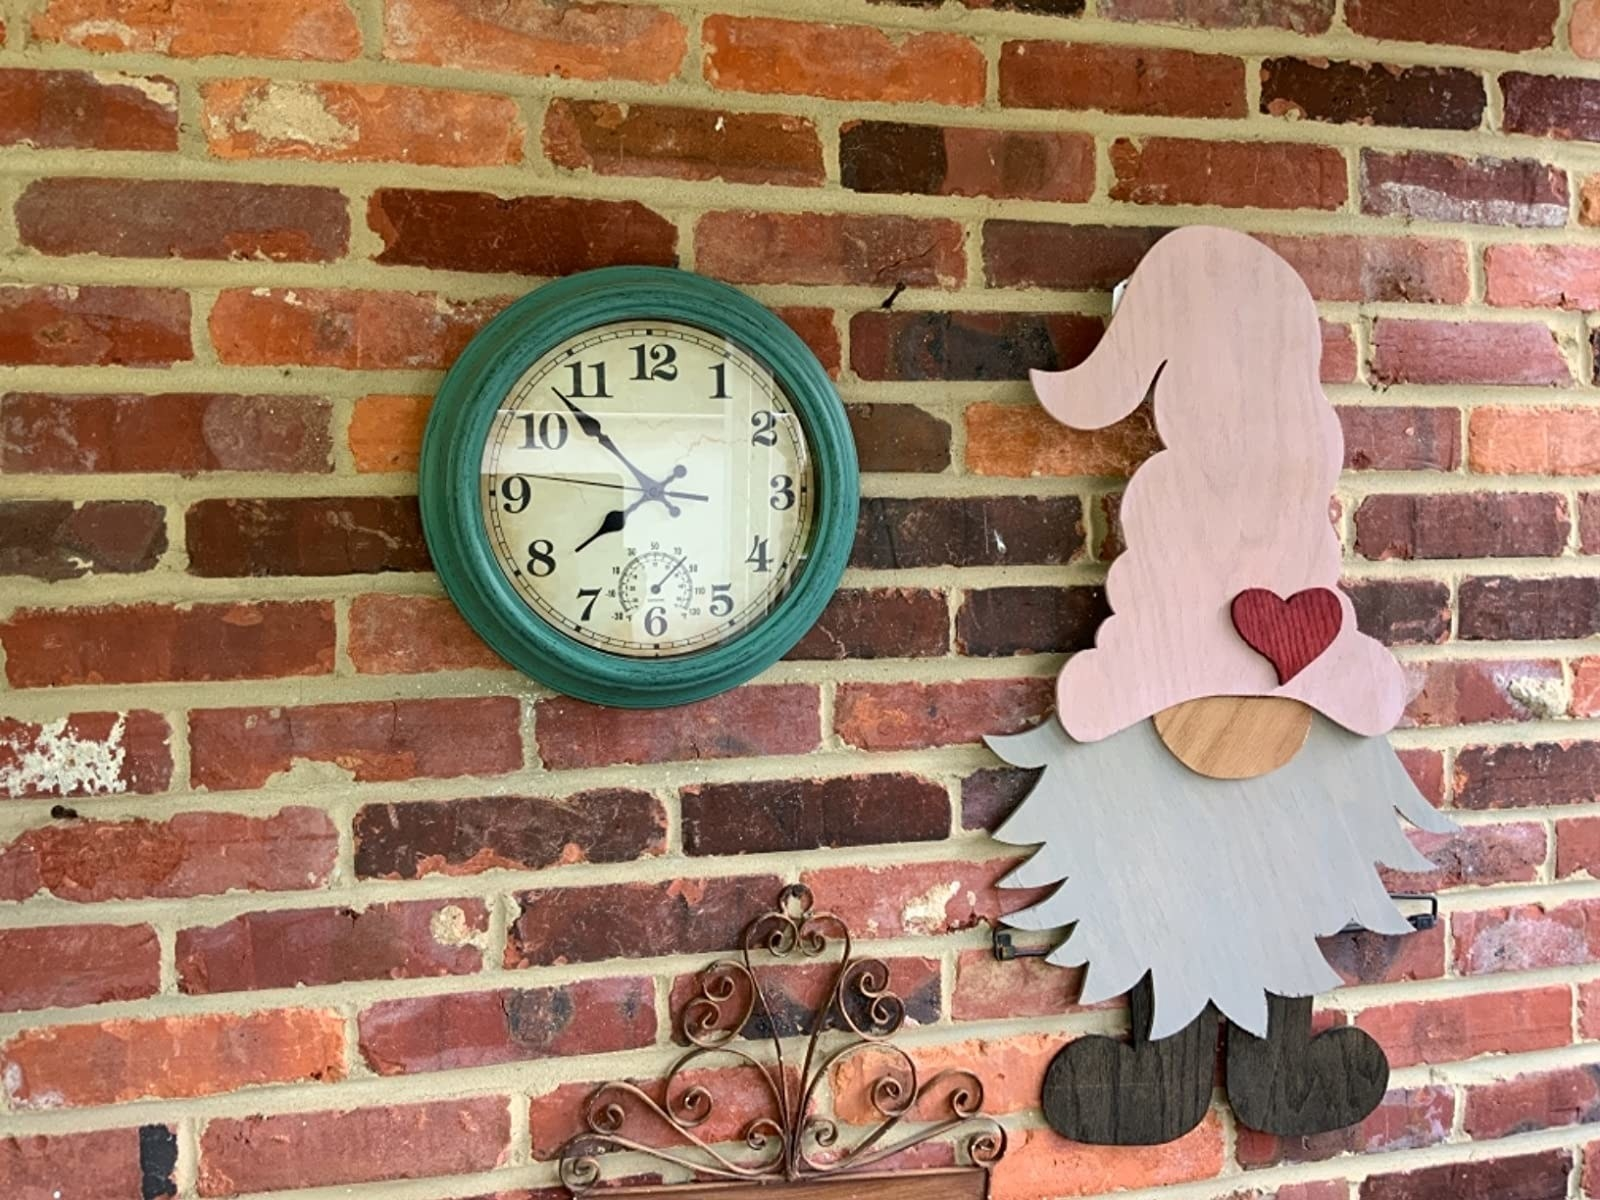 A green outdoor clock next to a gnome wall decor against a brick wall